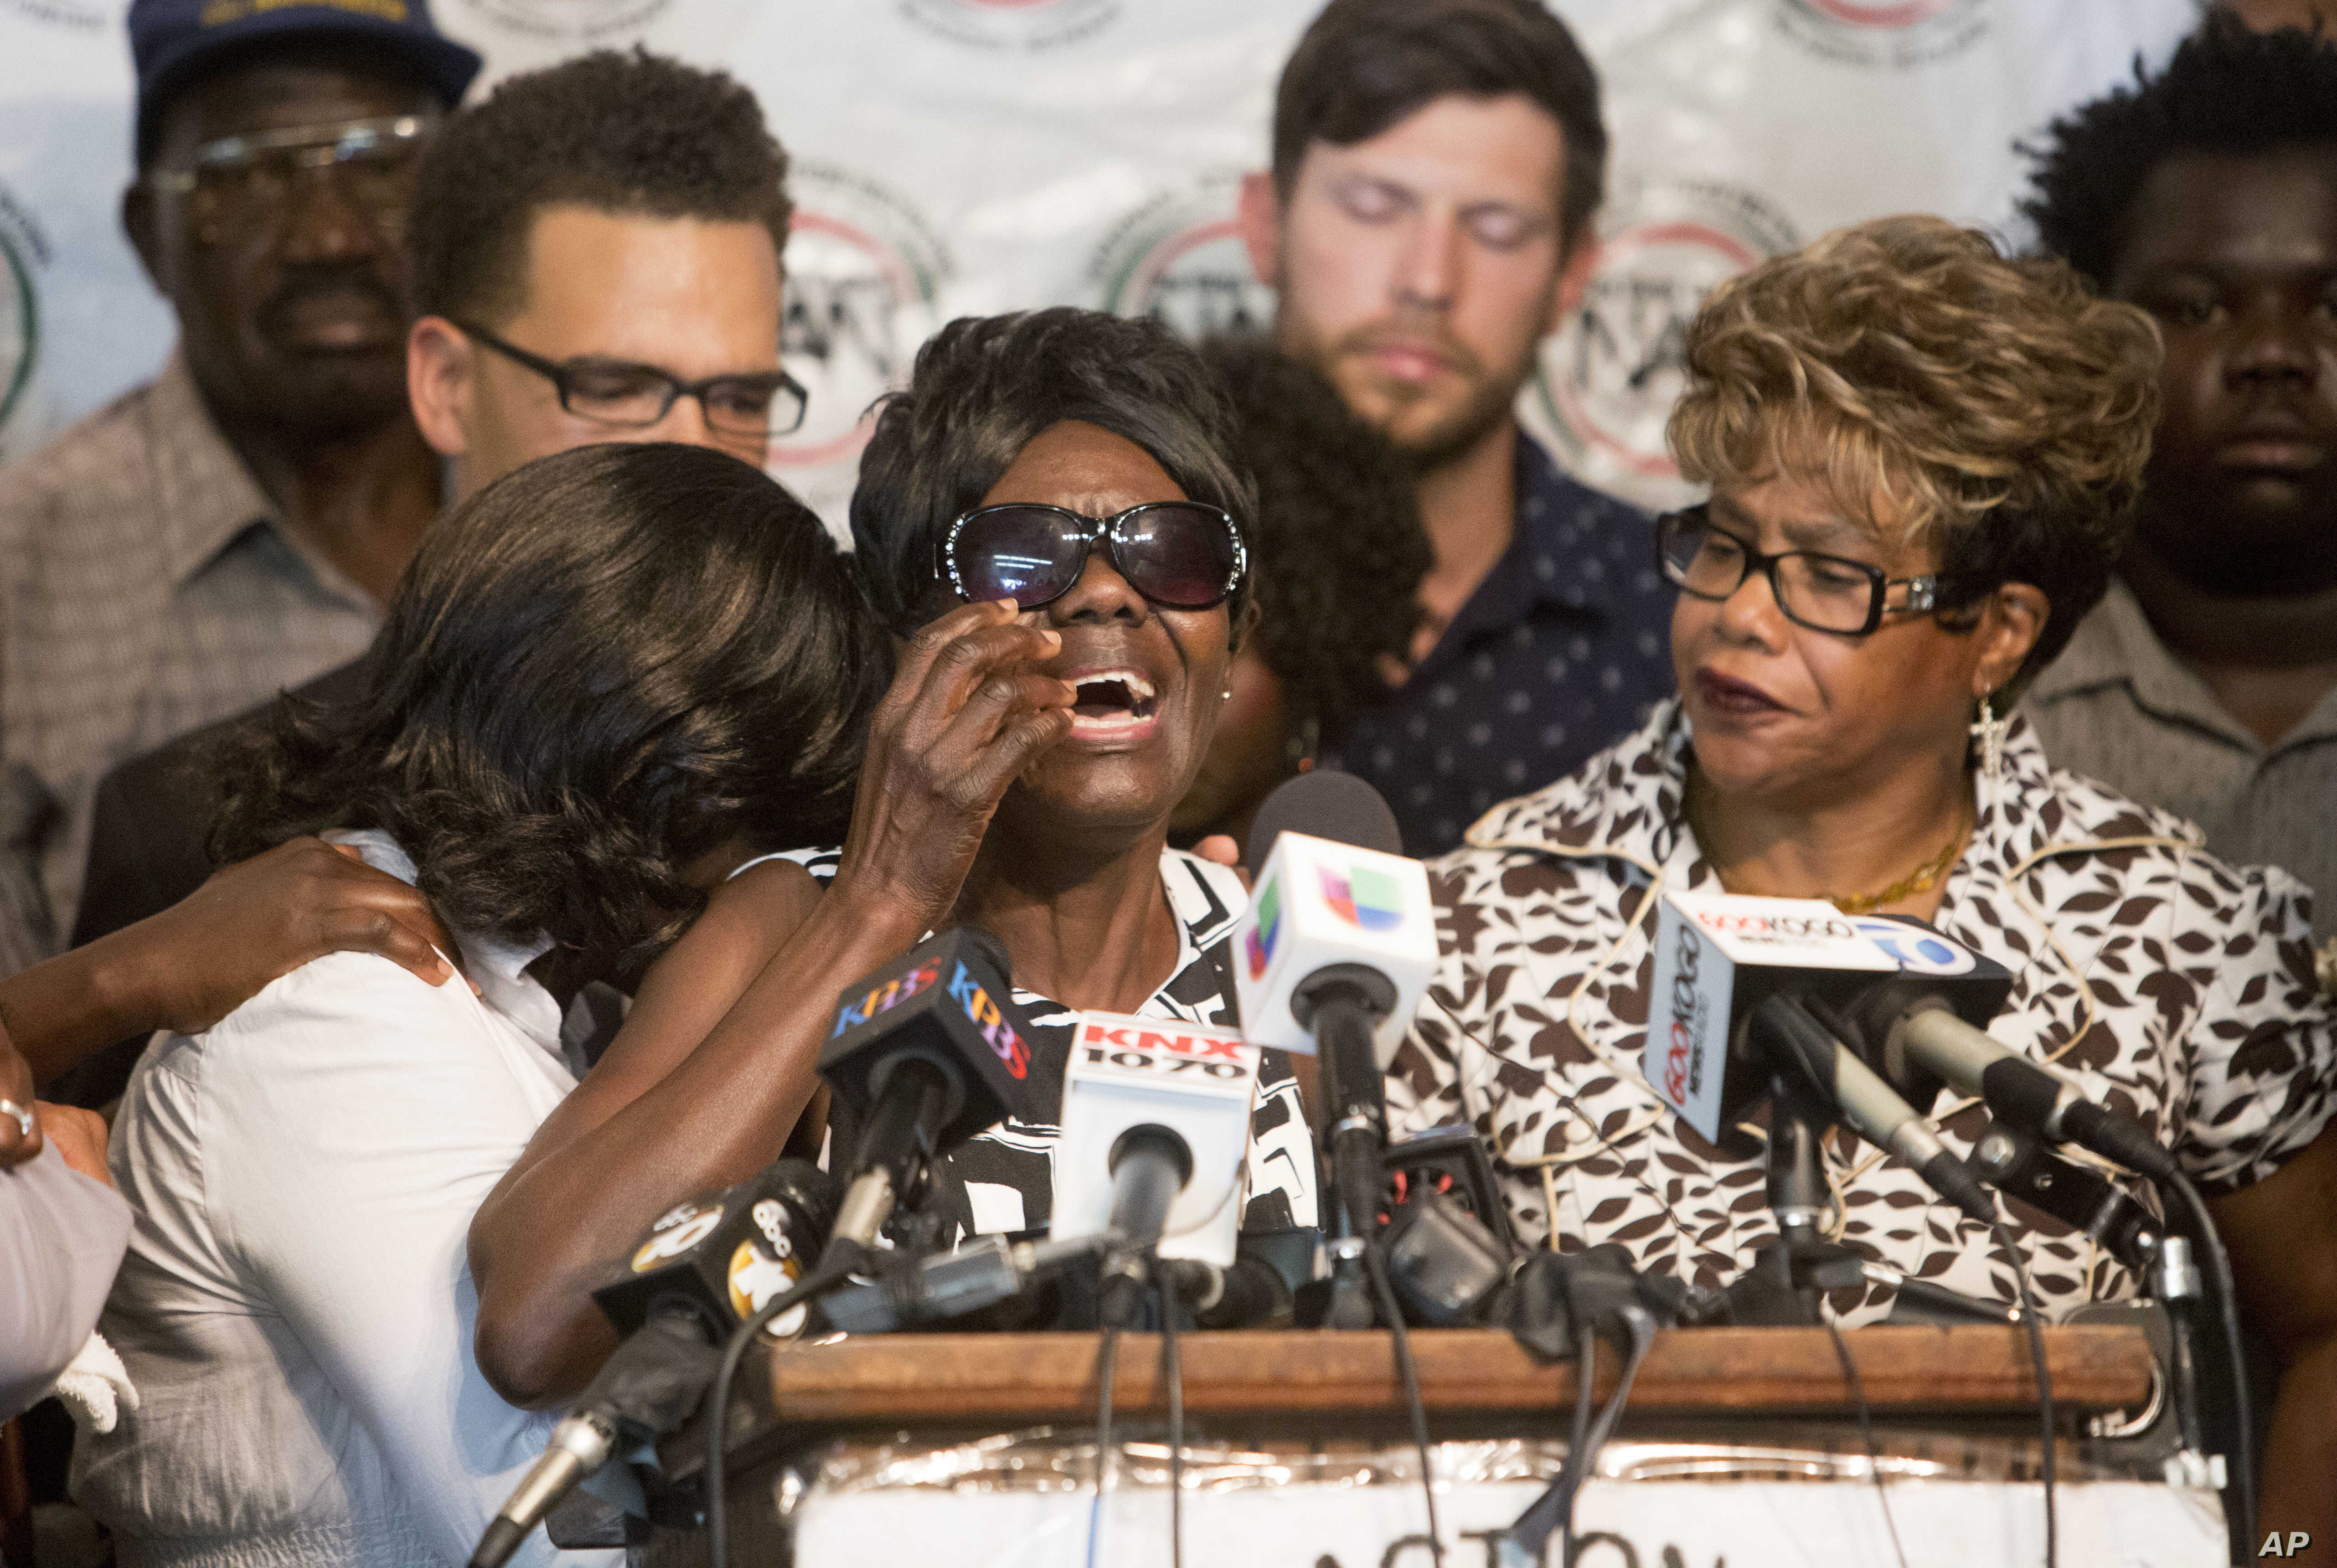 FILE - Pamela Benge, center, spoke of her son, Alfred Olango, at a press conference in San Diego, Calif., Sept. 29, 2016, to address the killing of Olango, a Ugandan refugee shot by an El Cajon police officer two days earlier.